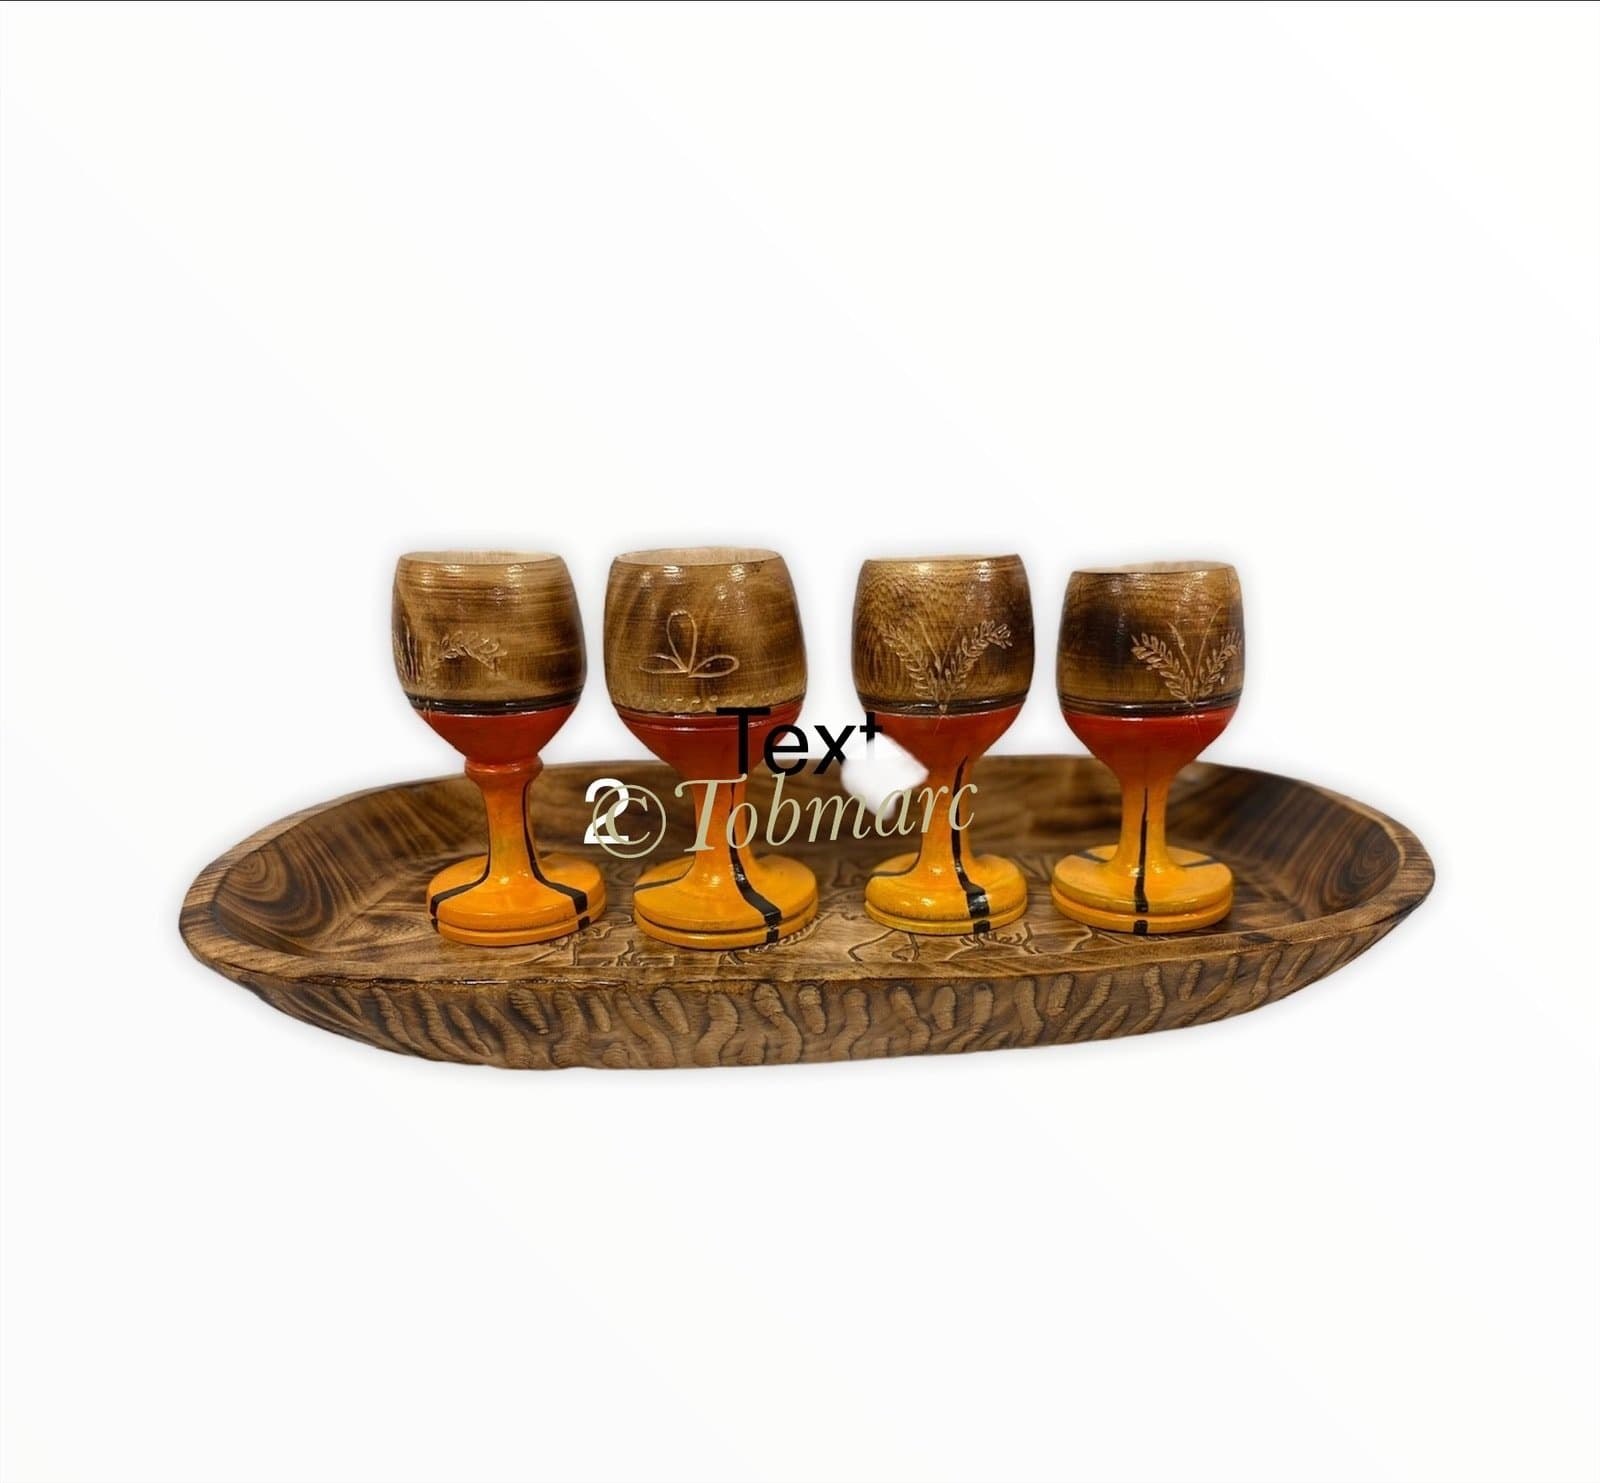 Personalized Animal Wooden Painted Wine Glasses Hakuna Matata Tray Tobmarc Home Decor Gifts